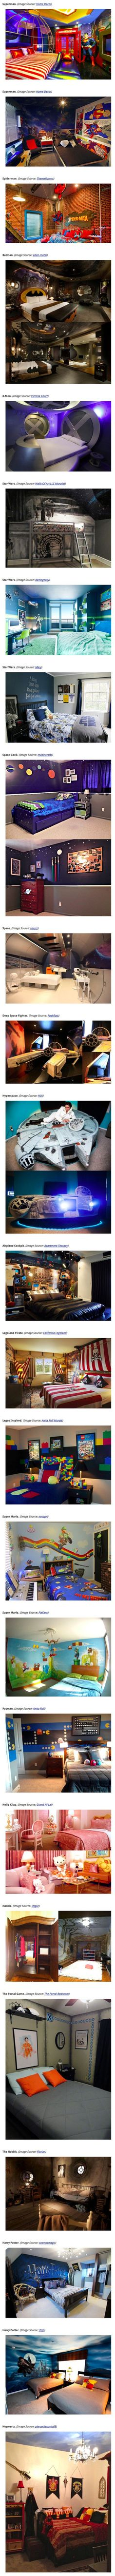 Because at the end of the day, what could be more fun than entering your very own world at night and waking from your fantasy dream every morning? Be you pirate or wizard, jedi or gamer, these are the 25 fantasy-themed bedrooms to die for.: